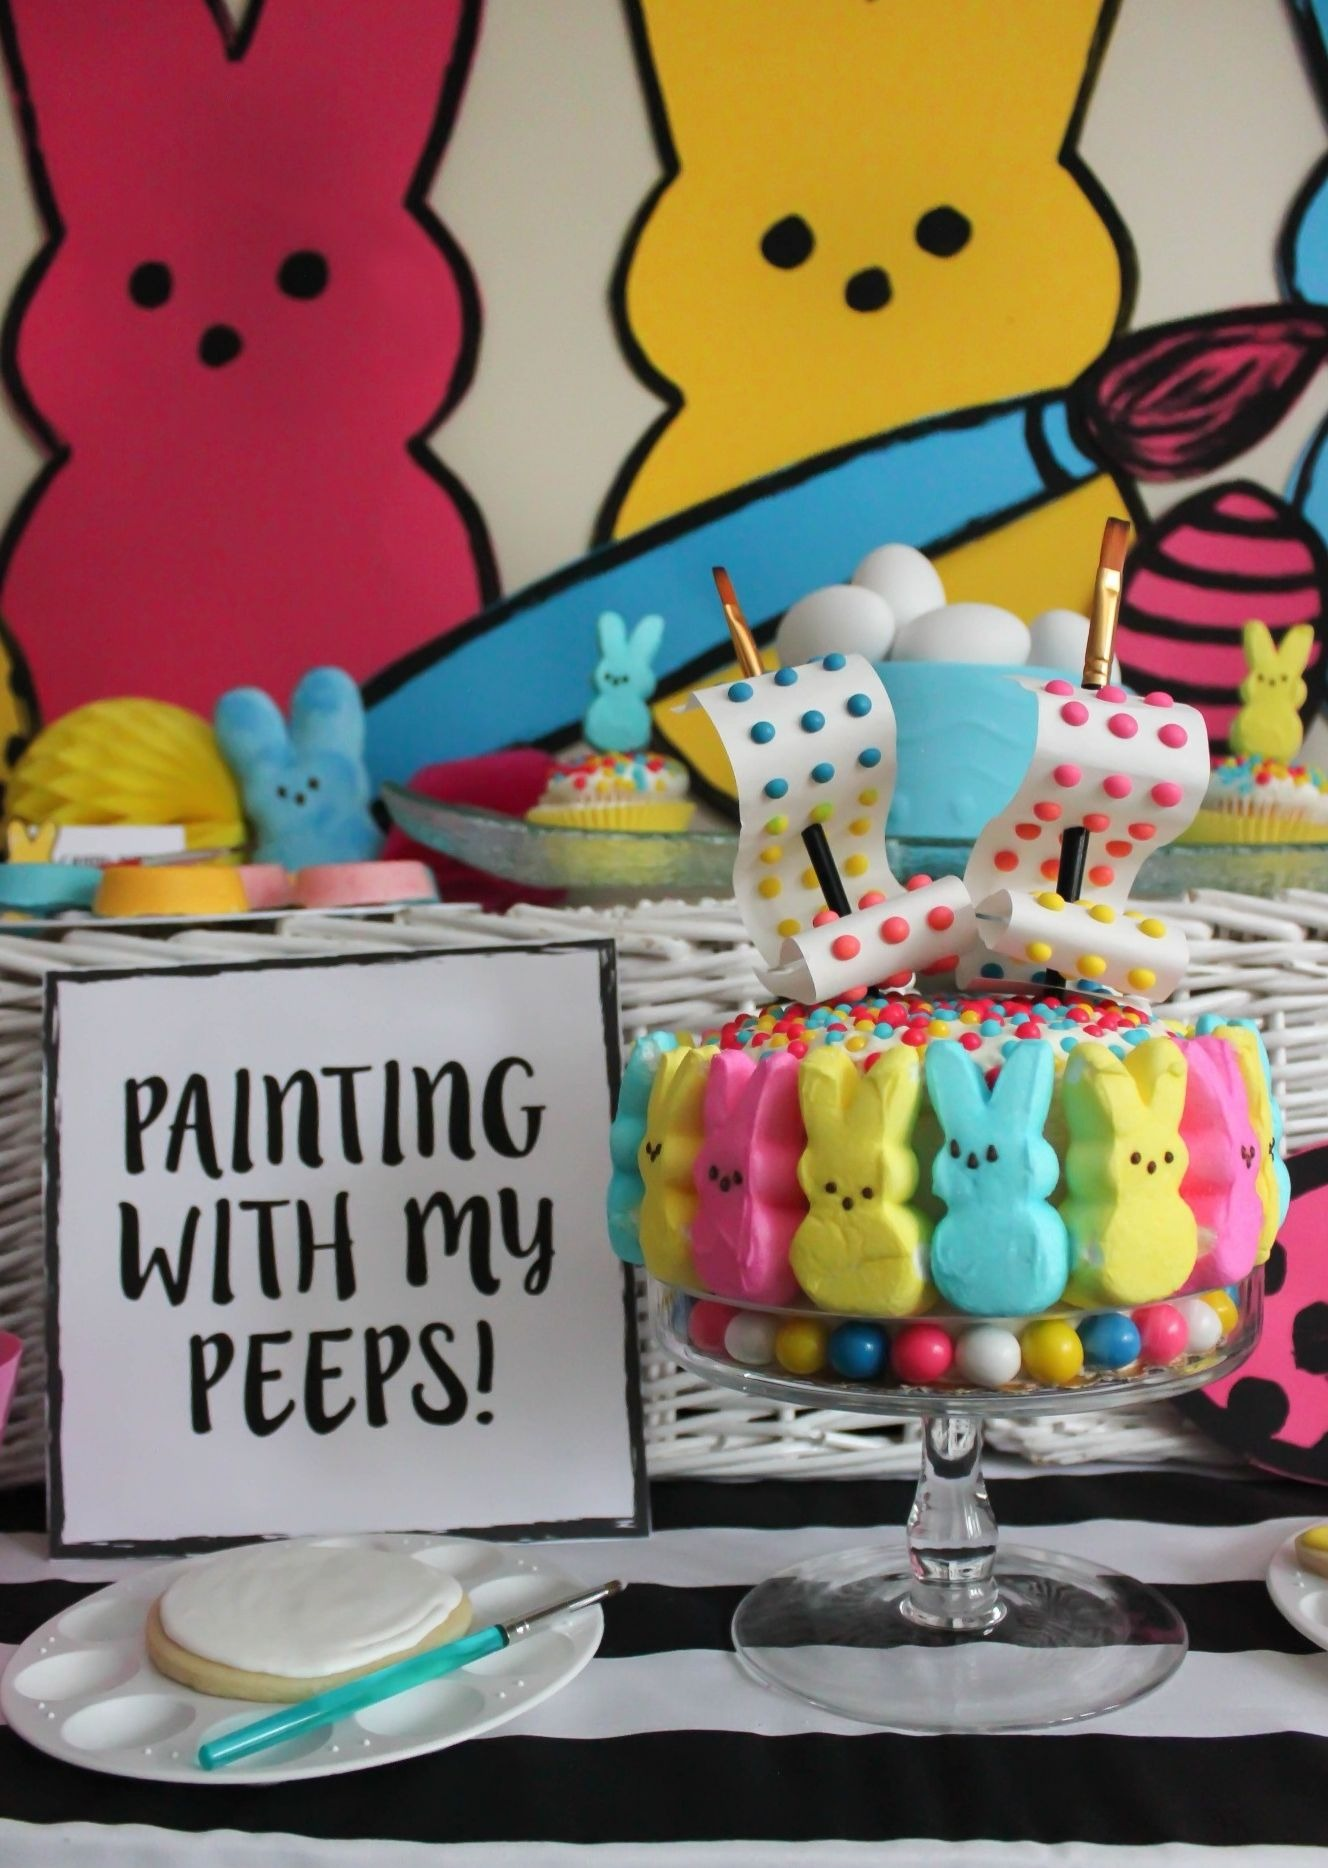 DIY Peeps Easter Cake from Painting with my Peeps Easter Party Styled by Just Add Confetti | Black Twine